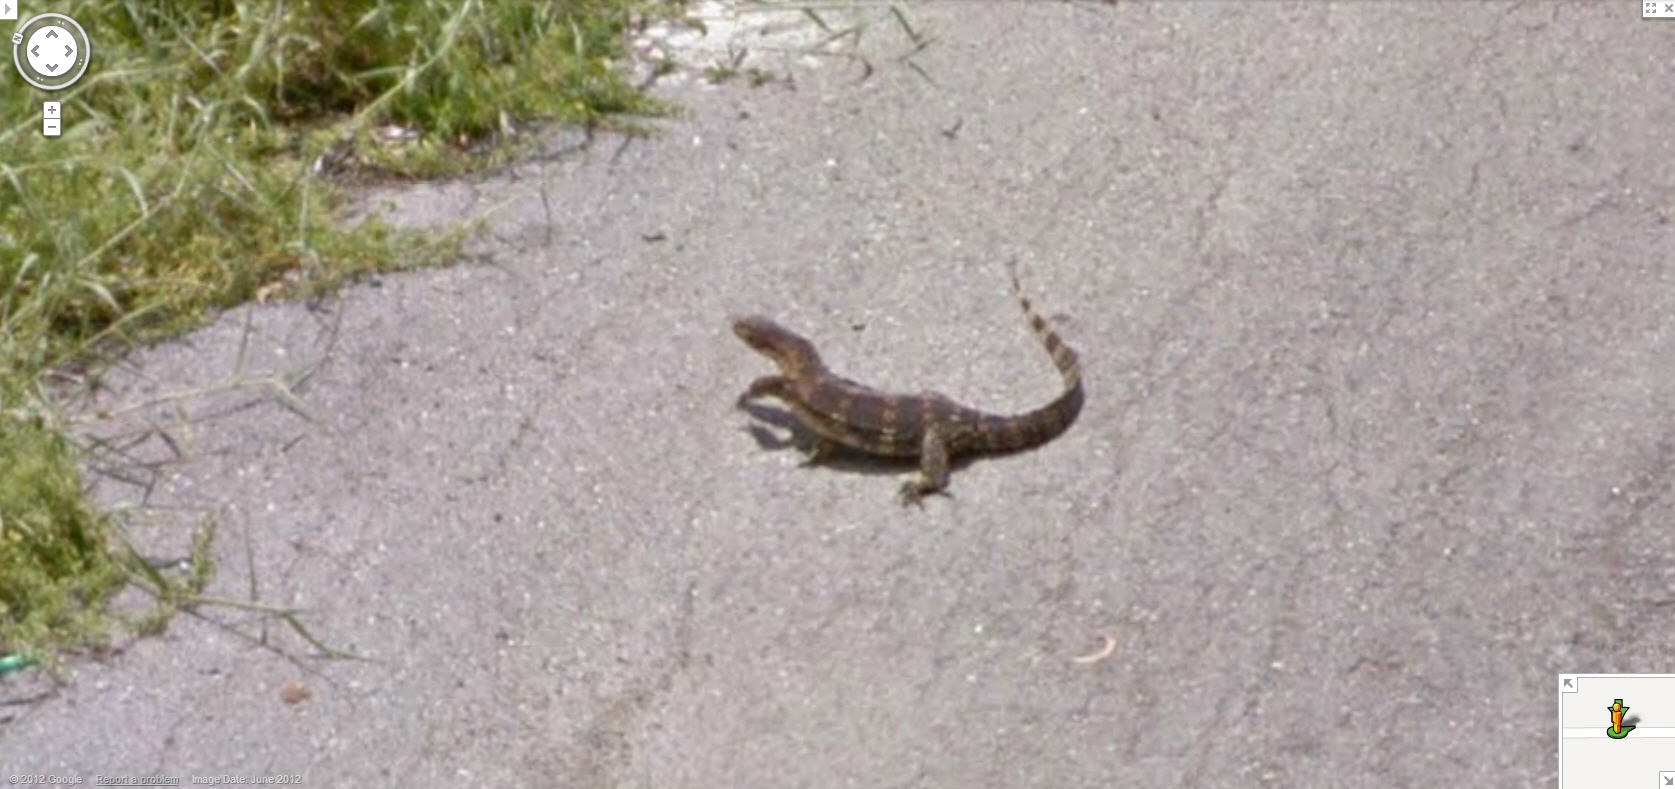 google-street-view-thailand-is-about-to-create-some-roadkill